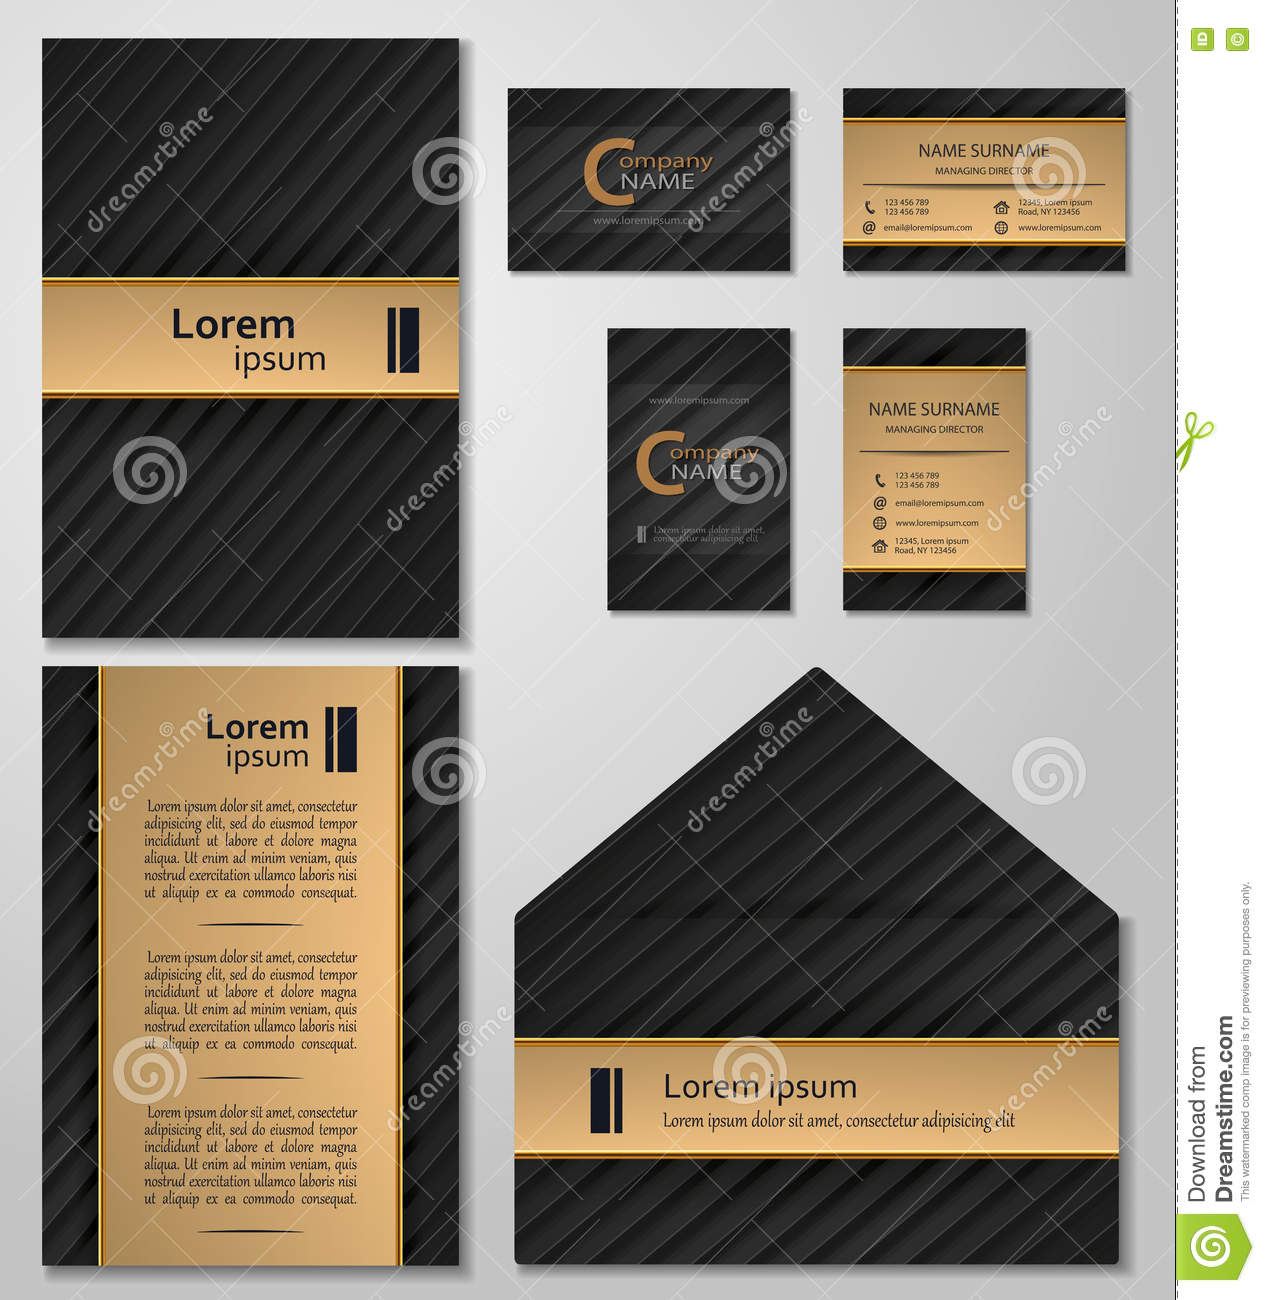 Cute 1 Circle Template Tiny 10 Best Resumes Round 10 Hour Schedule Templates 10 Steps To Creating An Effective Resume Youthful 10 Words Not To Put On Your Resume Dark100 Dollar Bill Template Business Card Template Vcard Set Black And Gold Style Stock Vector ..